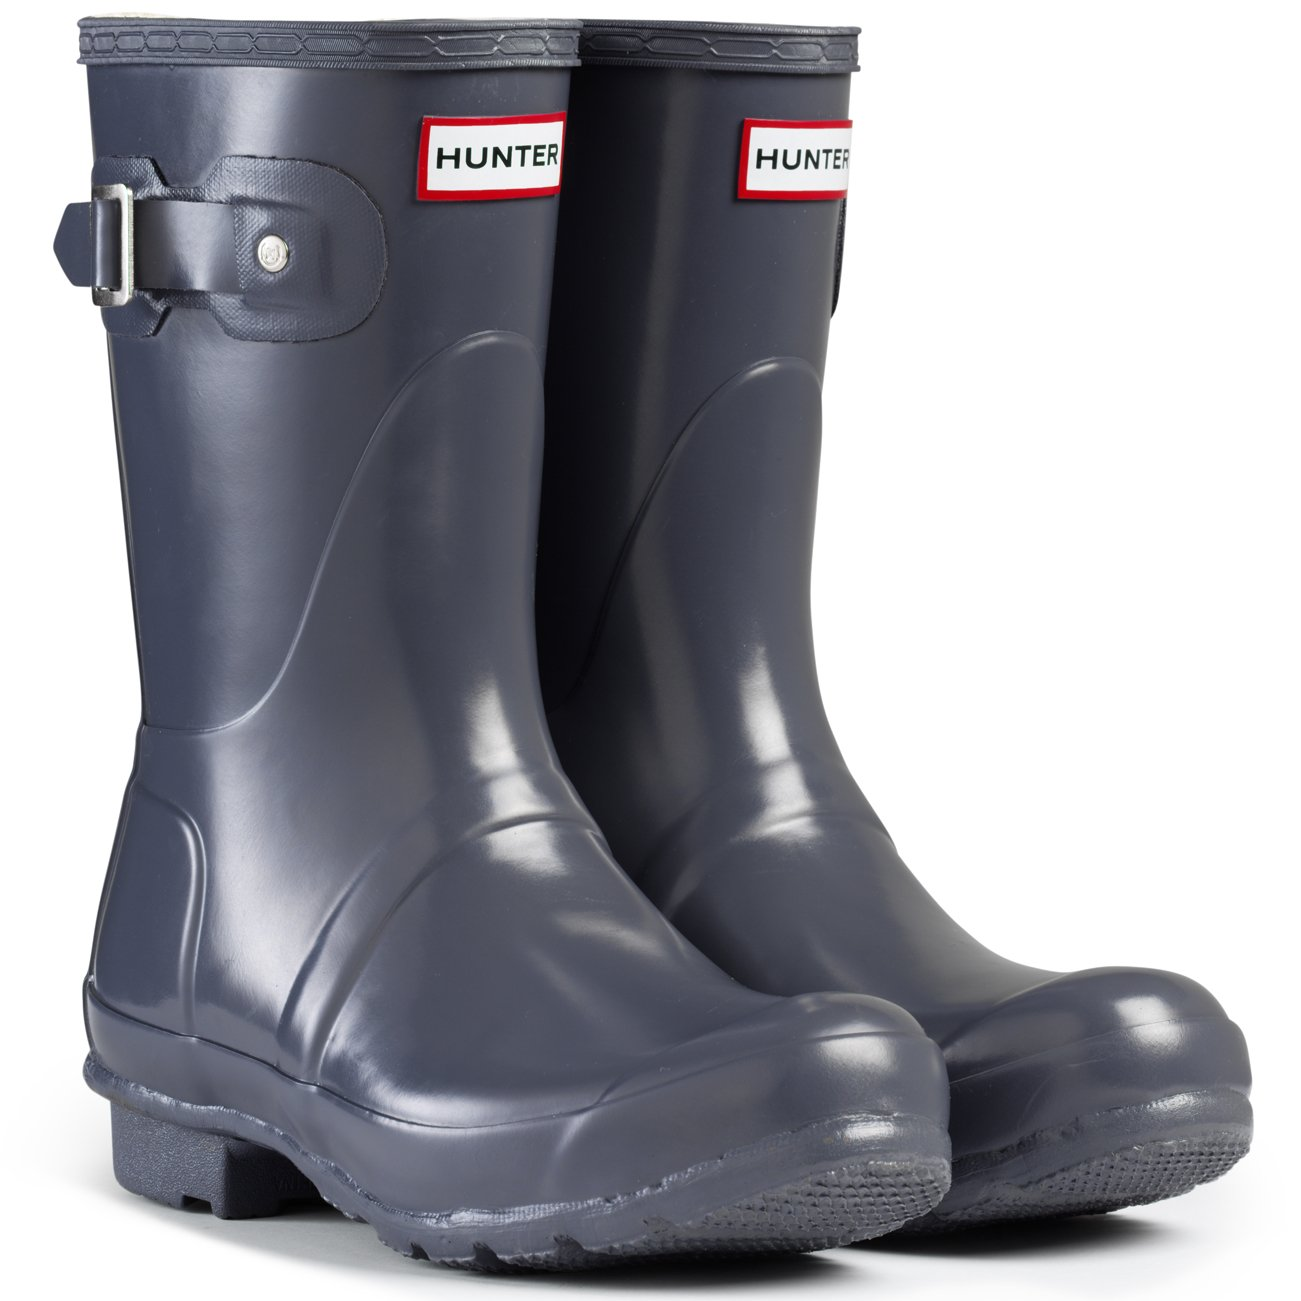 Hunter Women's Boots Original Short Gloss Snow Rain Boots Water Boots Unisex - Black - 8 B00IHW5MHE 5 M US|Graphite